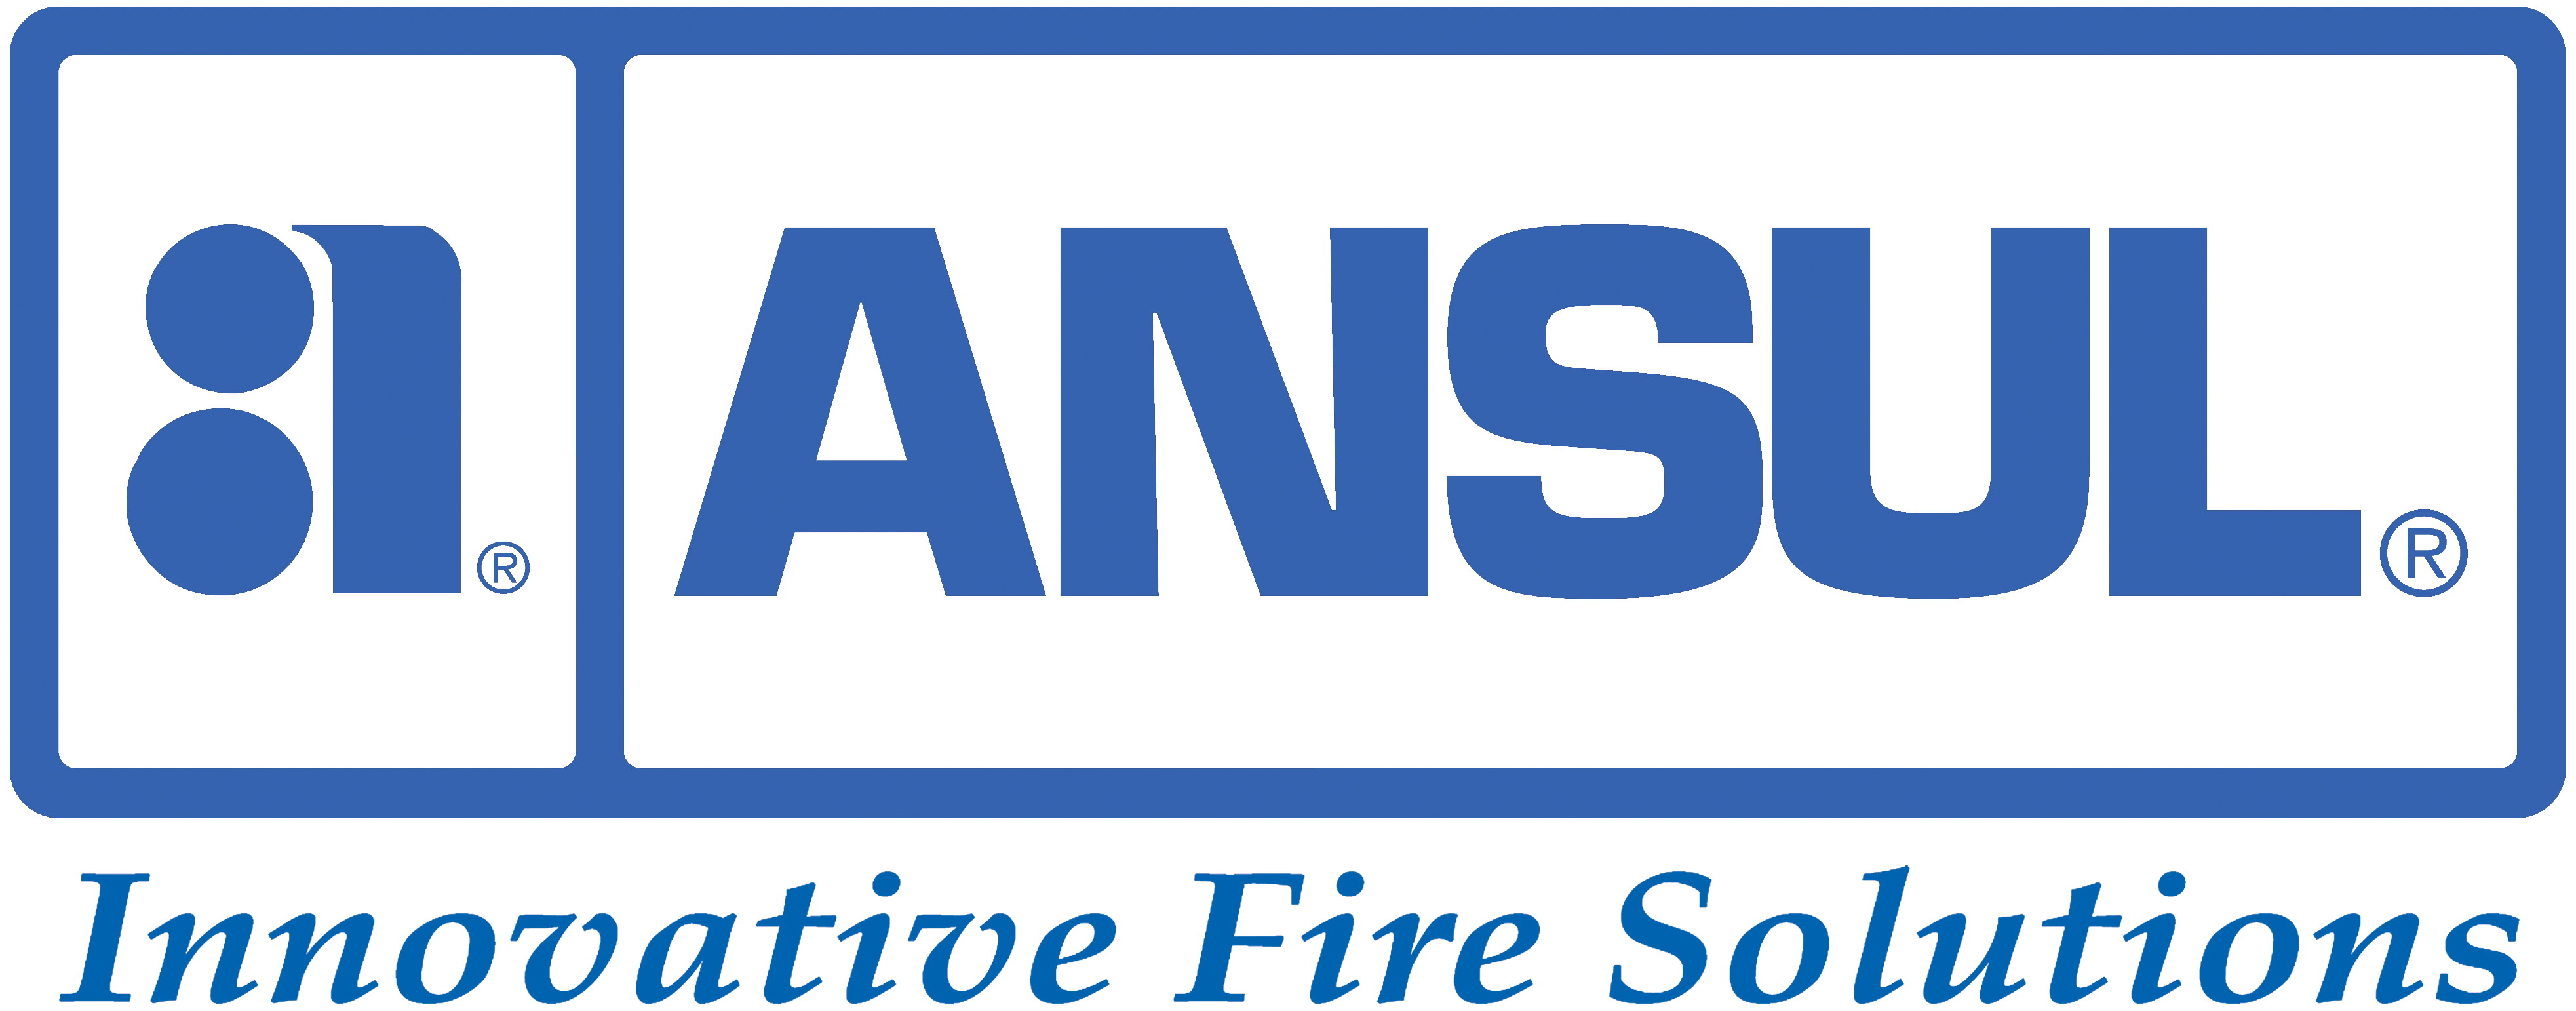 Tyco Fire Suppression Systems